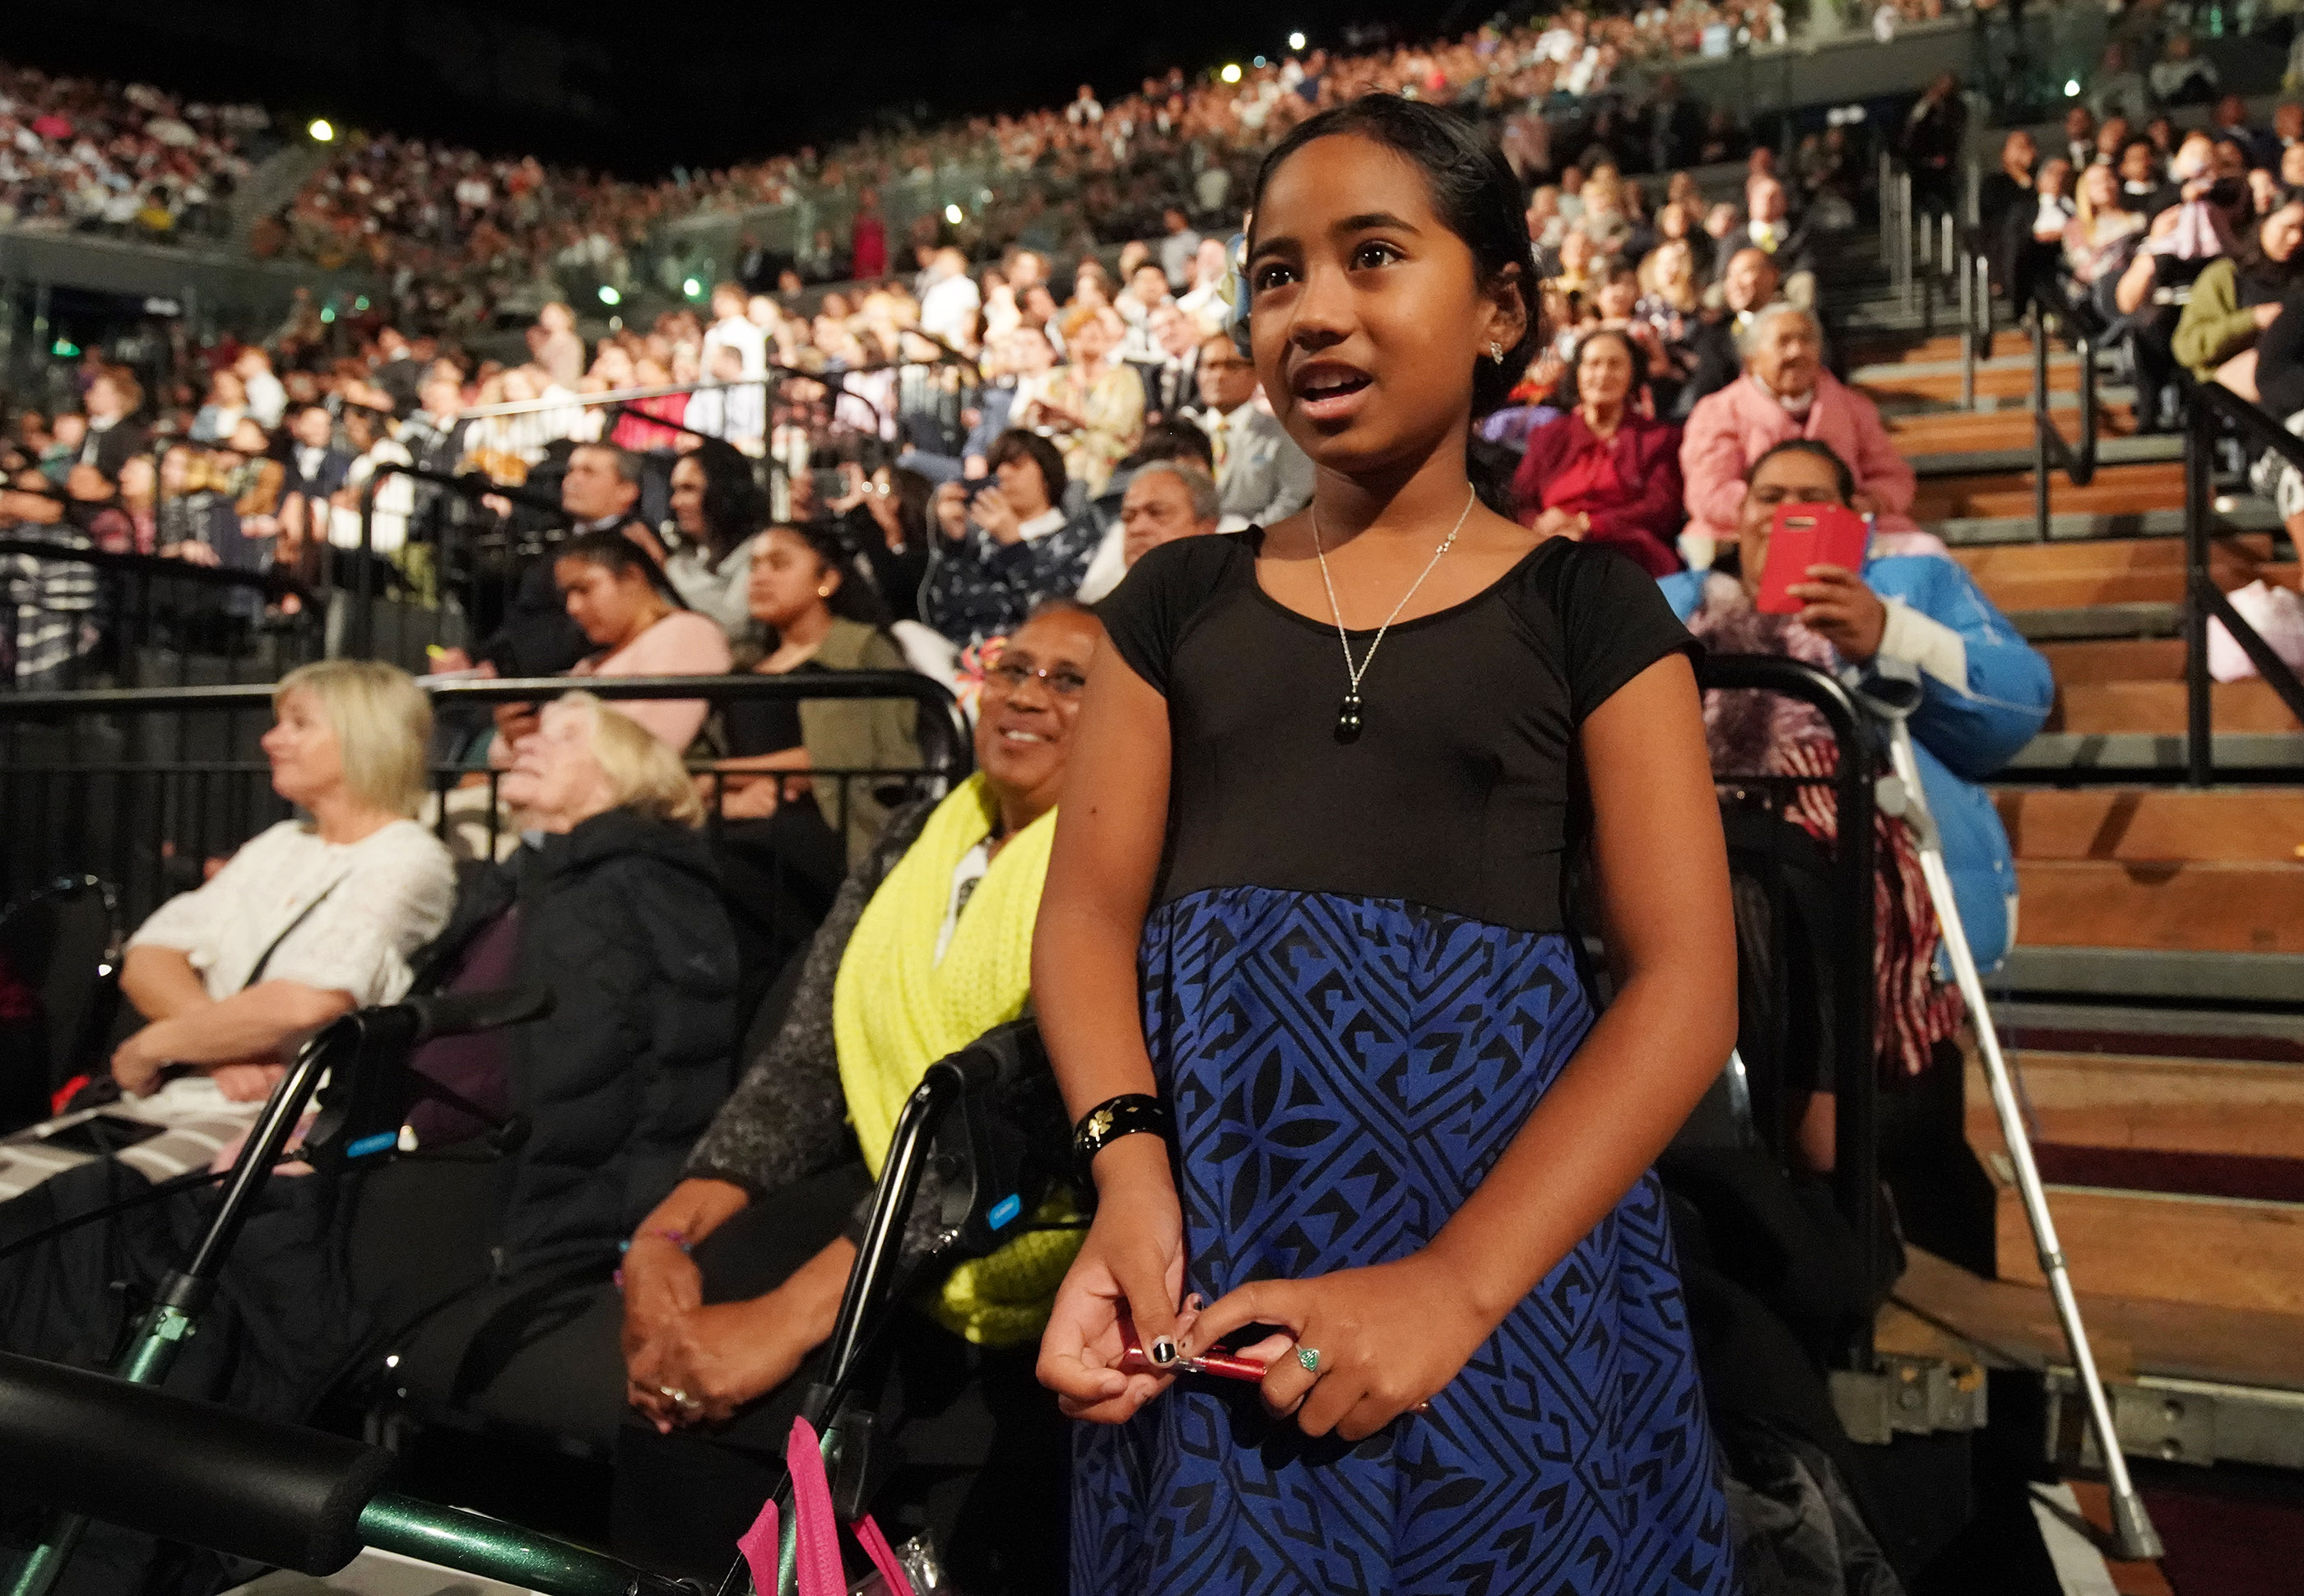 Jadarose Kapsin-Mani, 10, sings after President Russell M. Nelson of The Church of Jesus Christ of Latter-day Saints asked Primary-age children to sing during a devotional at Spark Arena in Auckland, New Zealand on May 21, 2019.